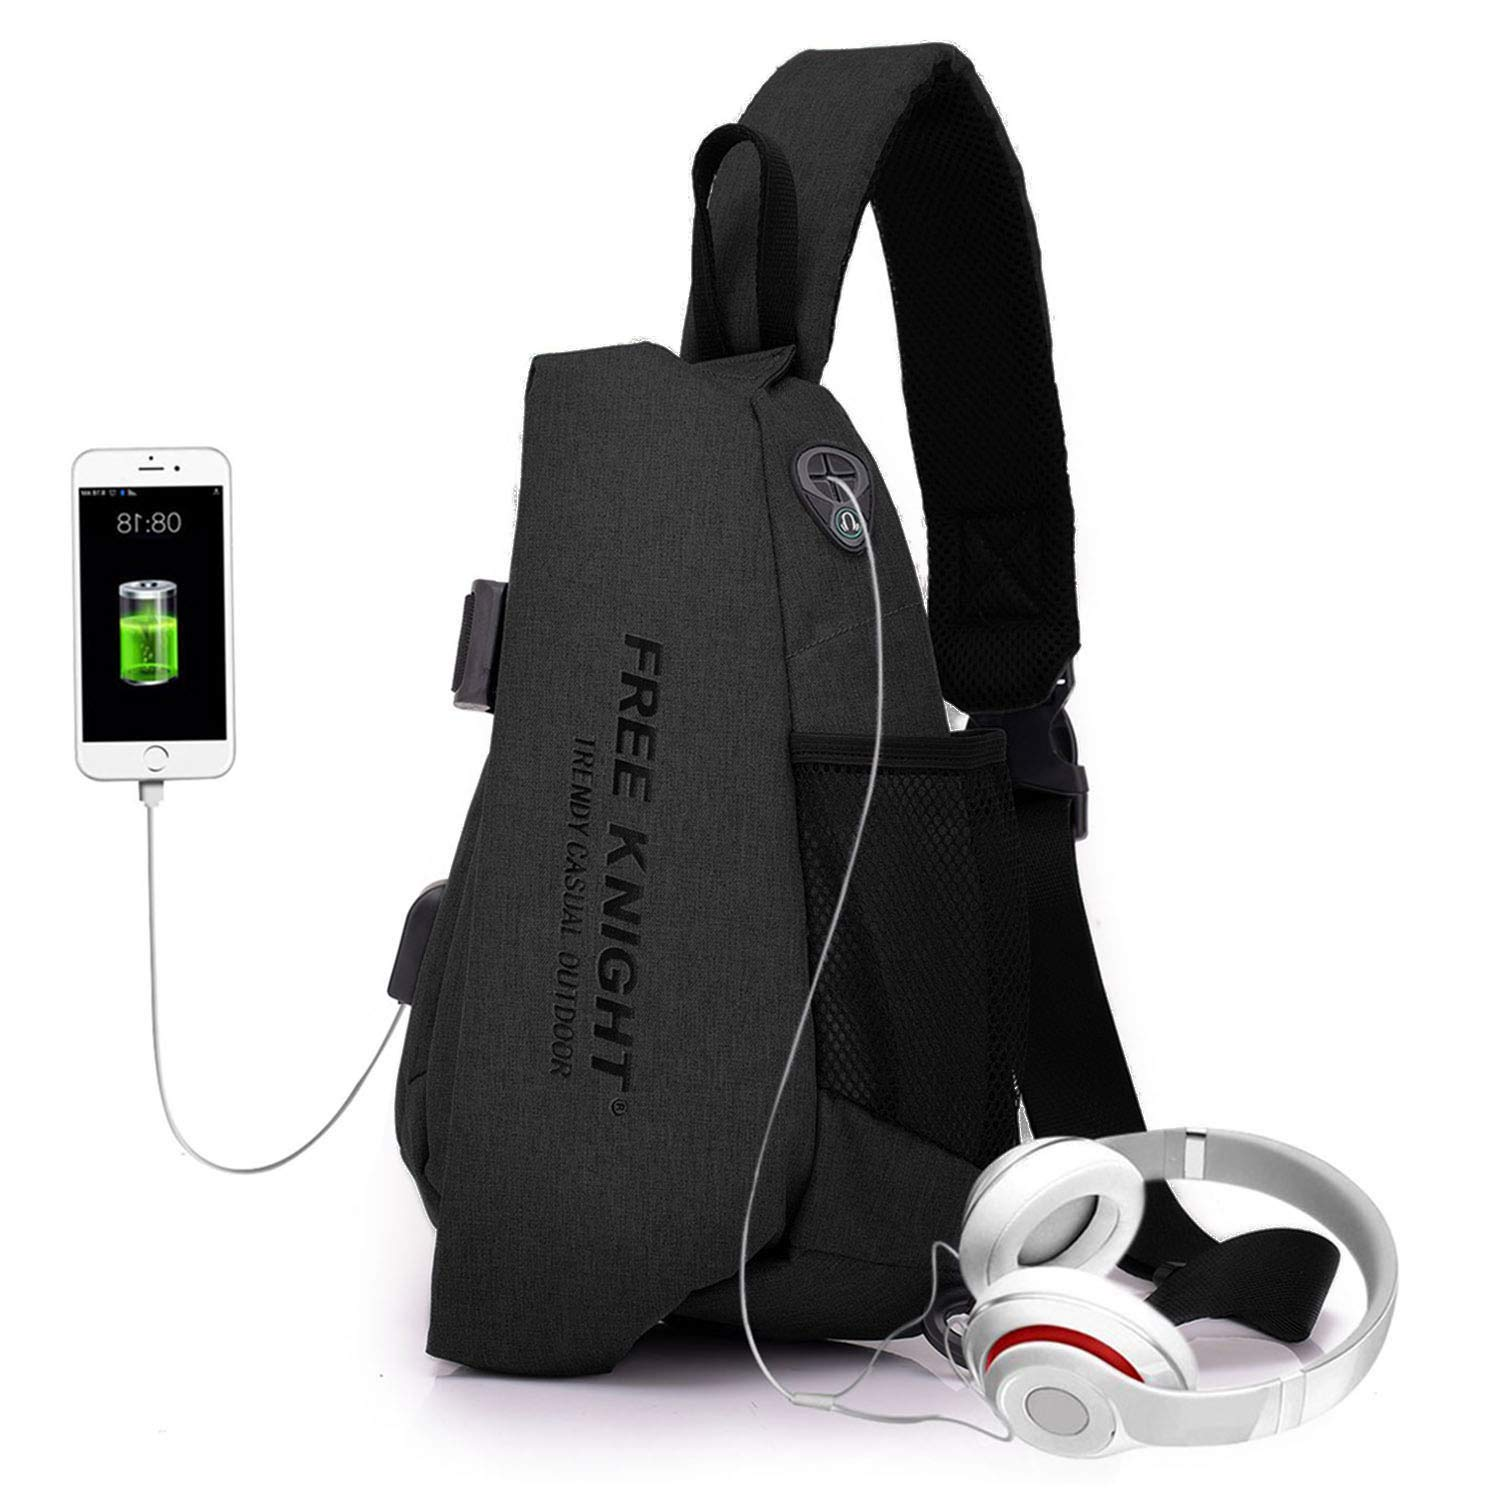 a317fed2cd77 FREE KNTGHT Sling Chest Bag Shoulder Crossbody Backpacks Triangle Rucksack  with USB Charging Port and Headphone Port for Outdoor Hiking Casual Men  Women